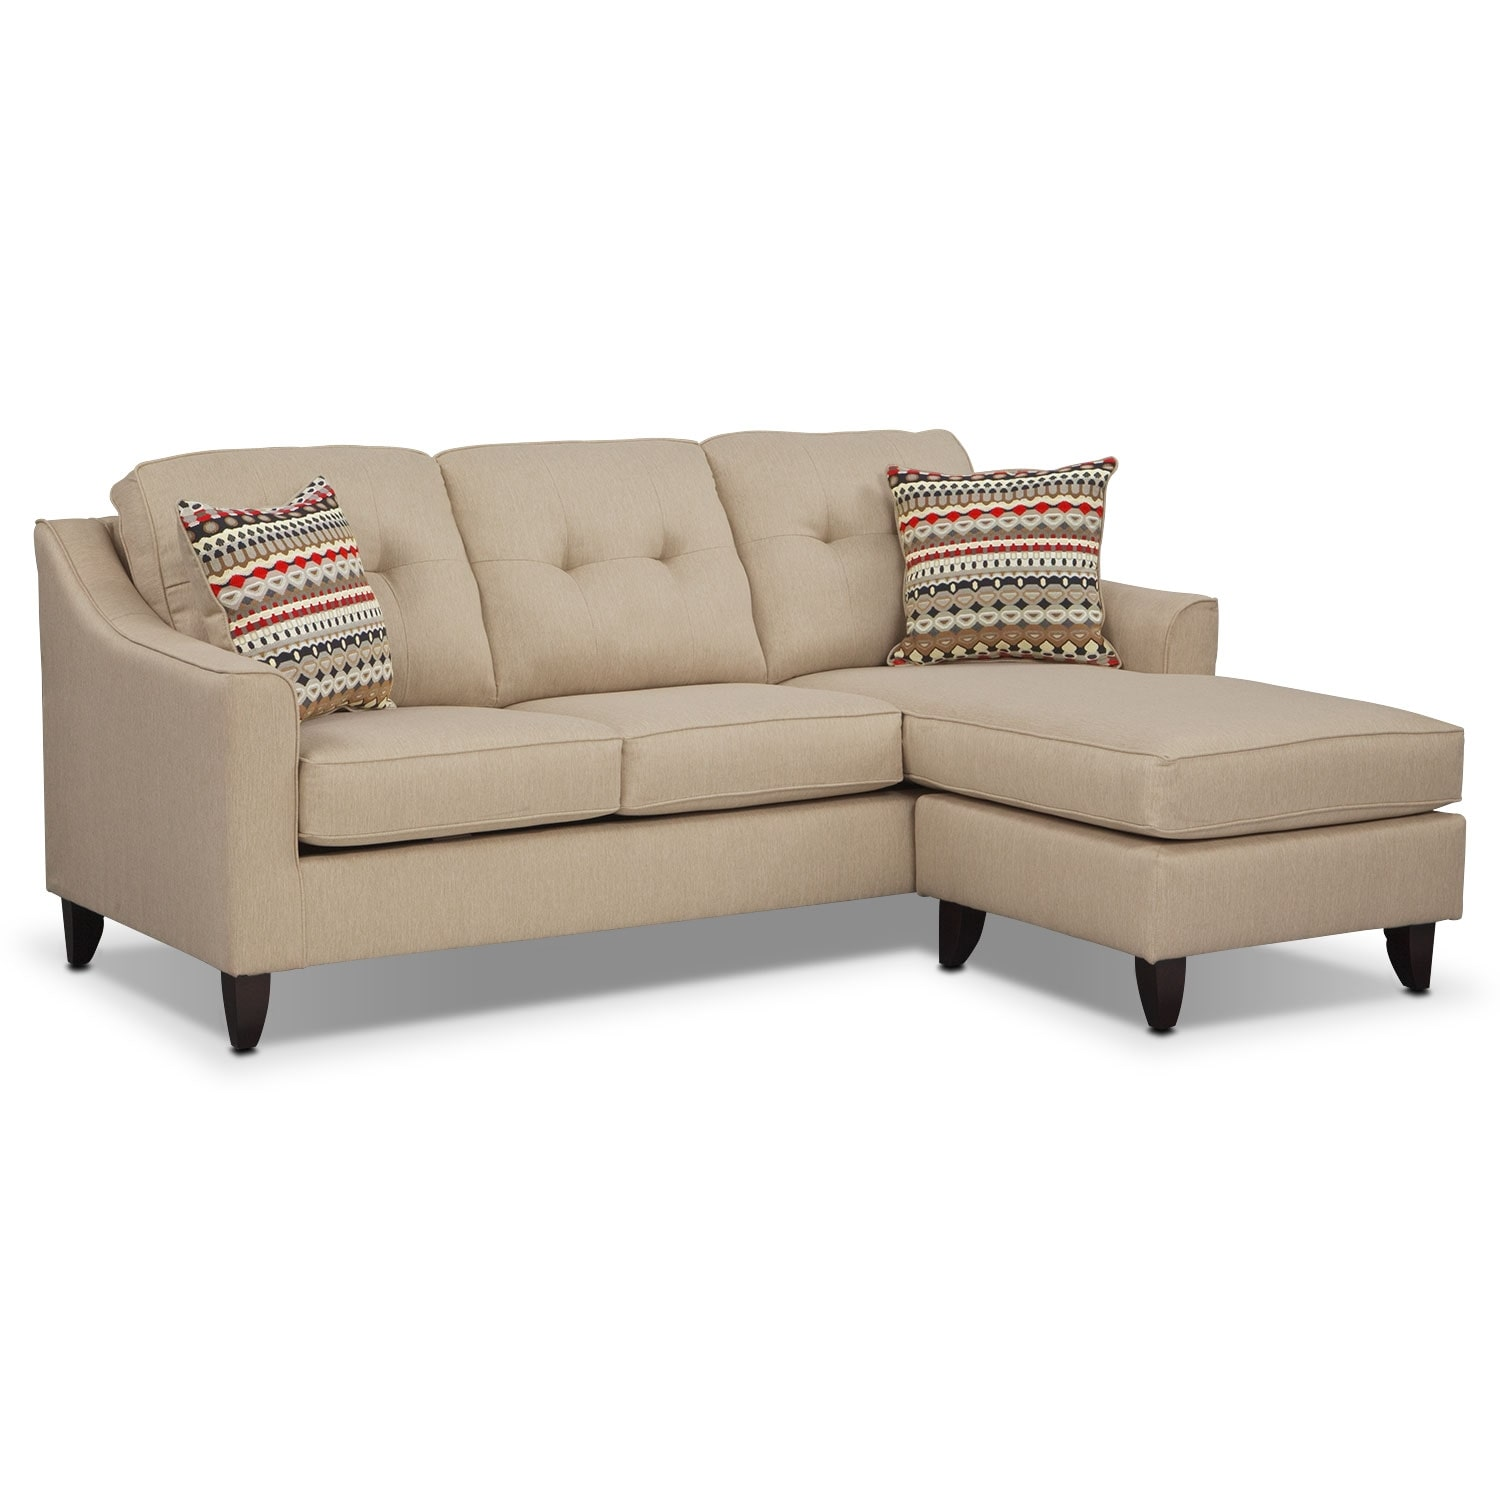 Marco Chaise Sofa Cream American Signature Furniture